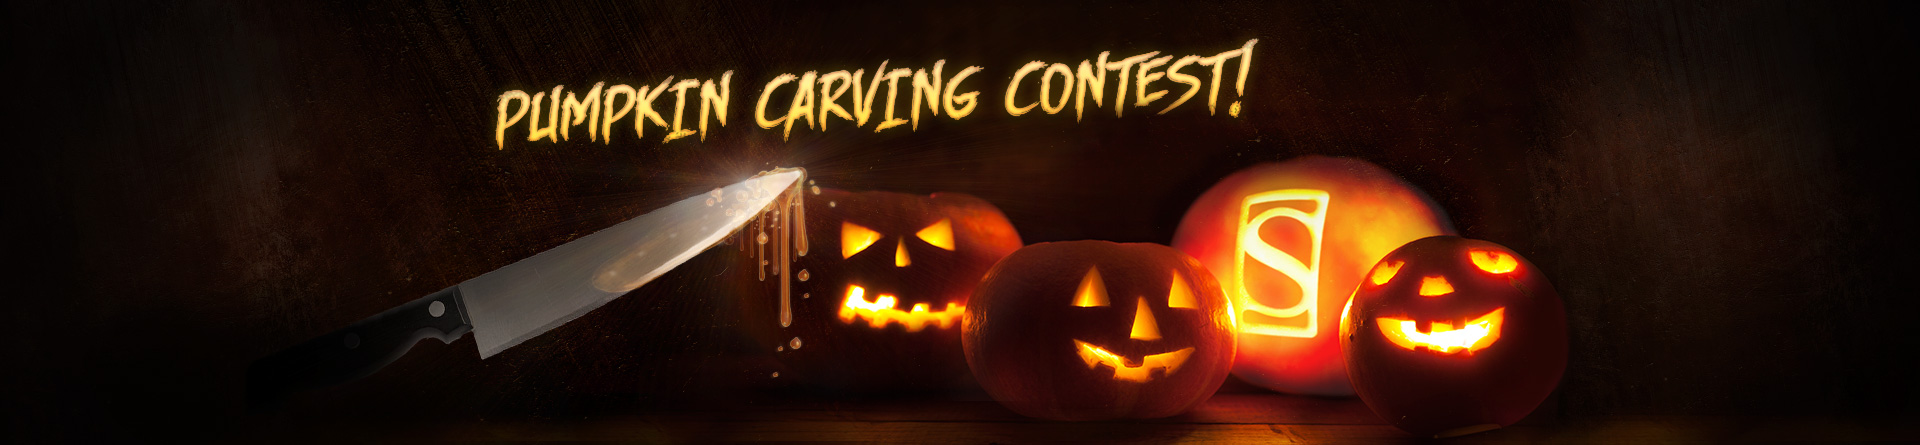 Spooktacular Pumpkin Carving Contest 2015 | Sideshow Collectibles ...